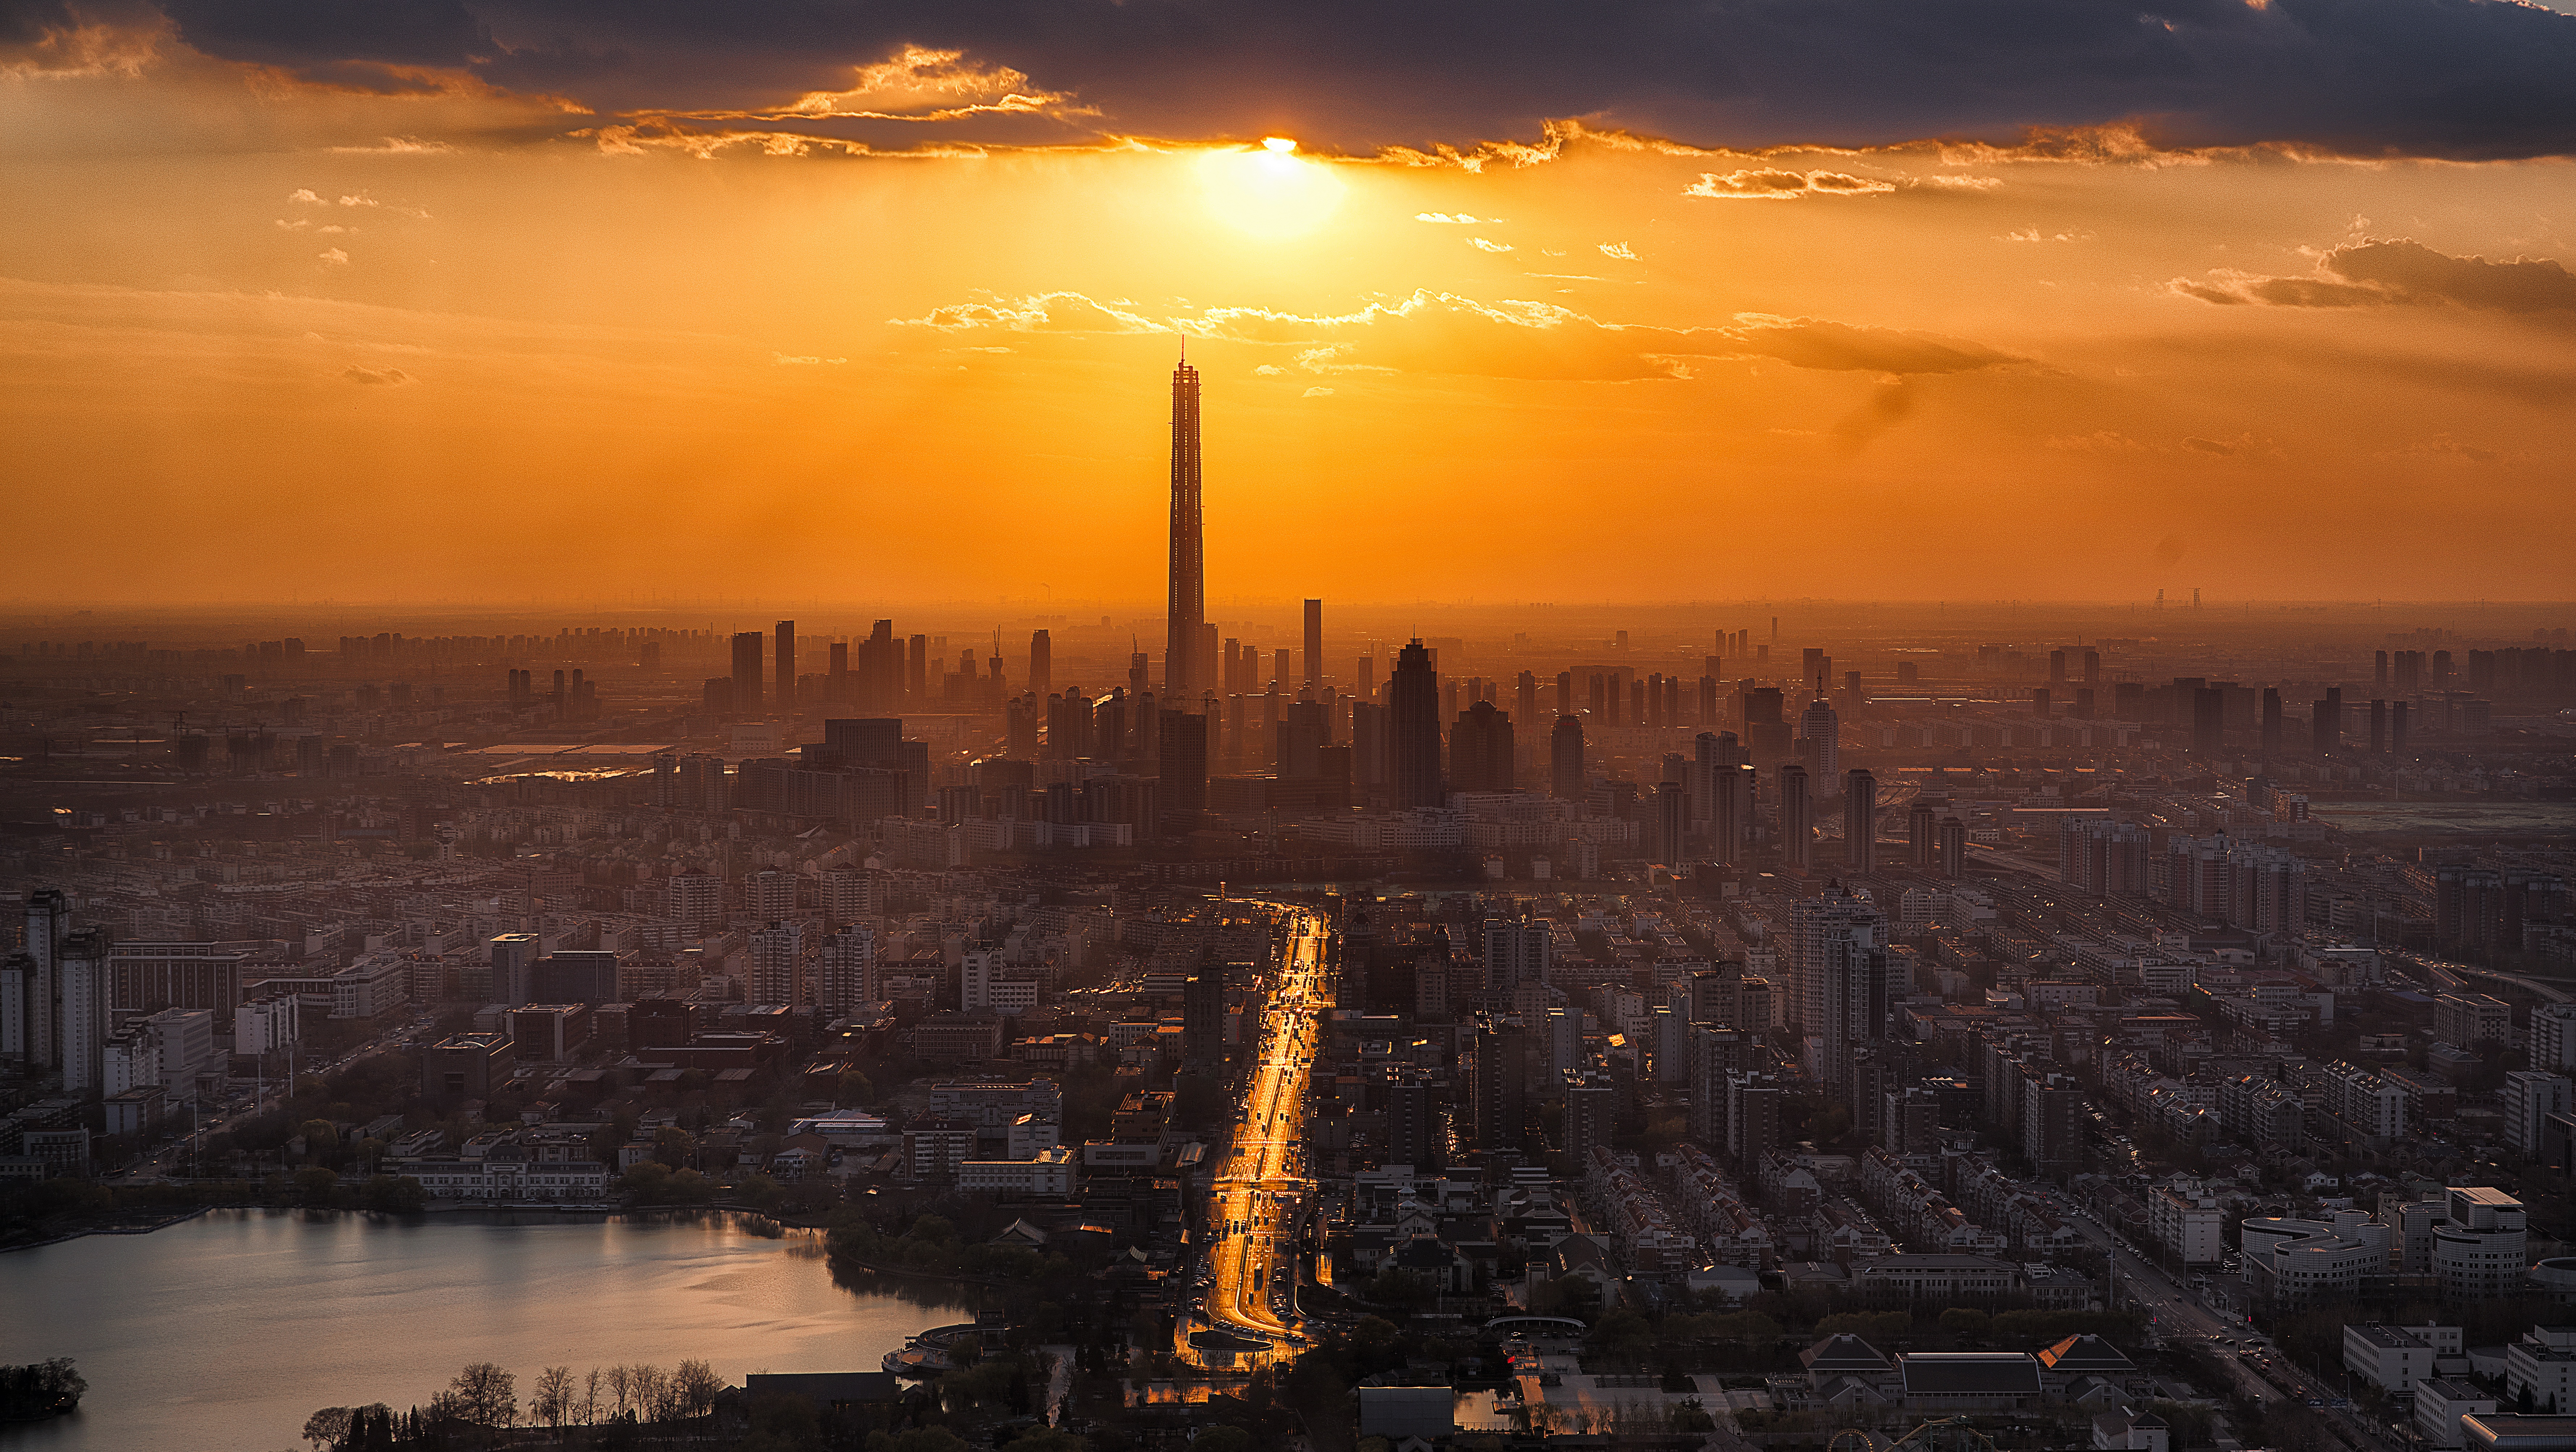 Tianjin, China - asmuSe